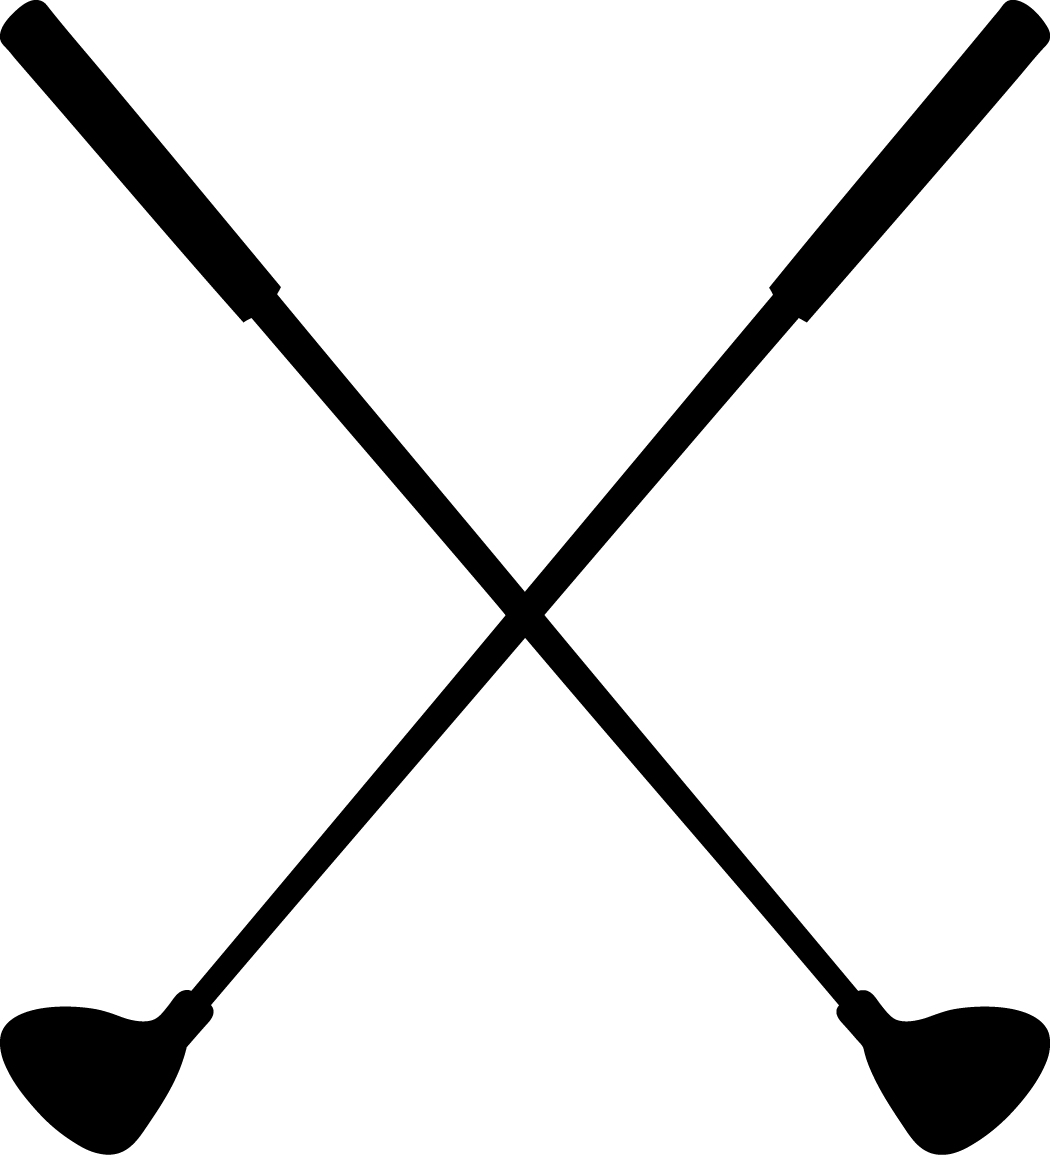 Crossed baseball bat clipart jpg free crossed-golf-club-clipart-RidKgqX6T jpg free